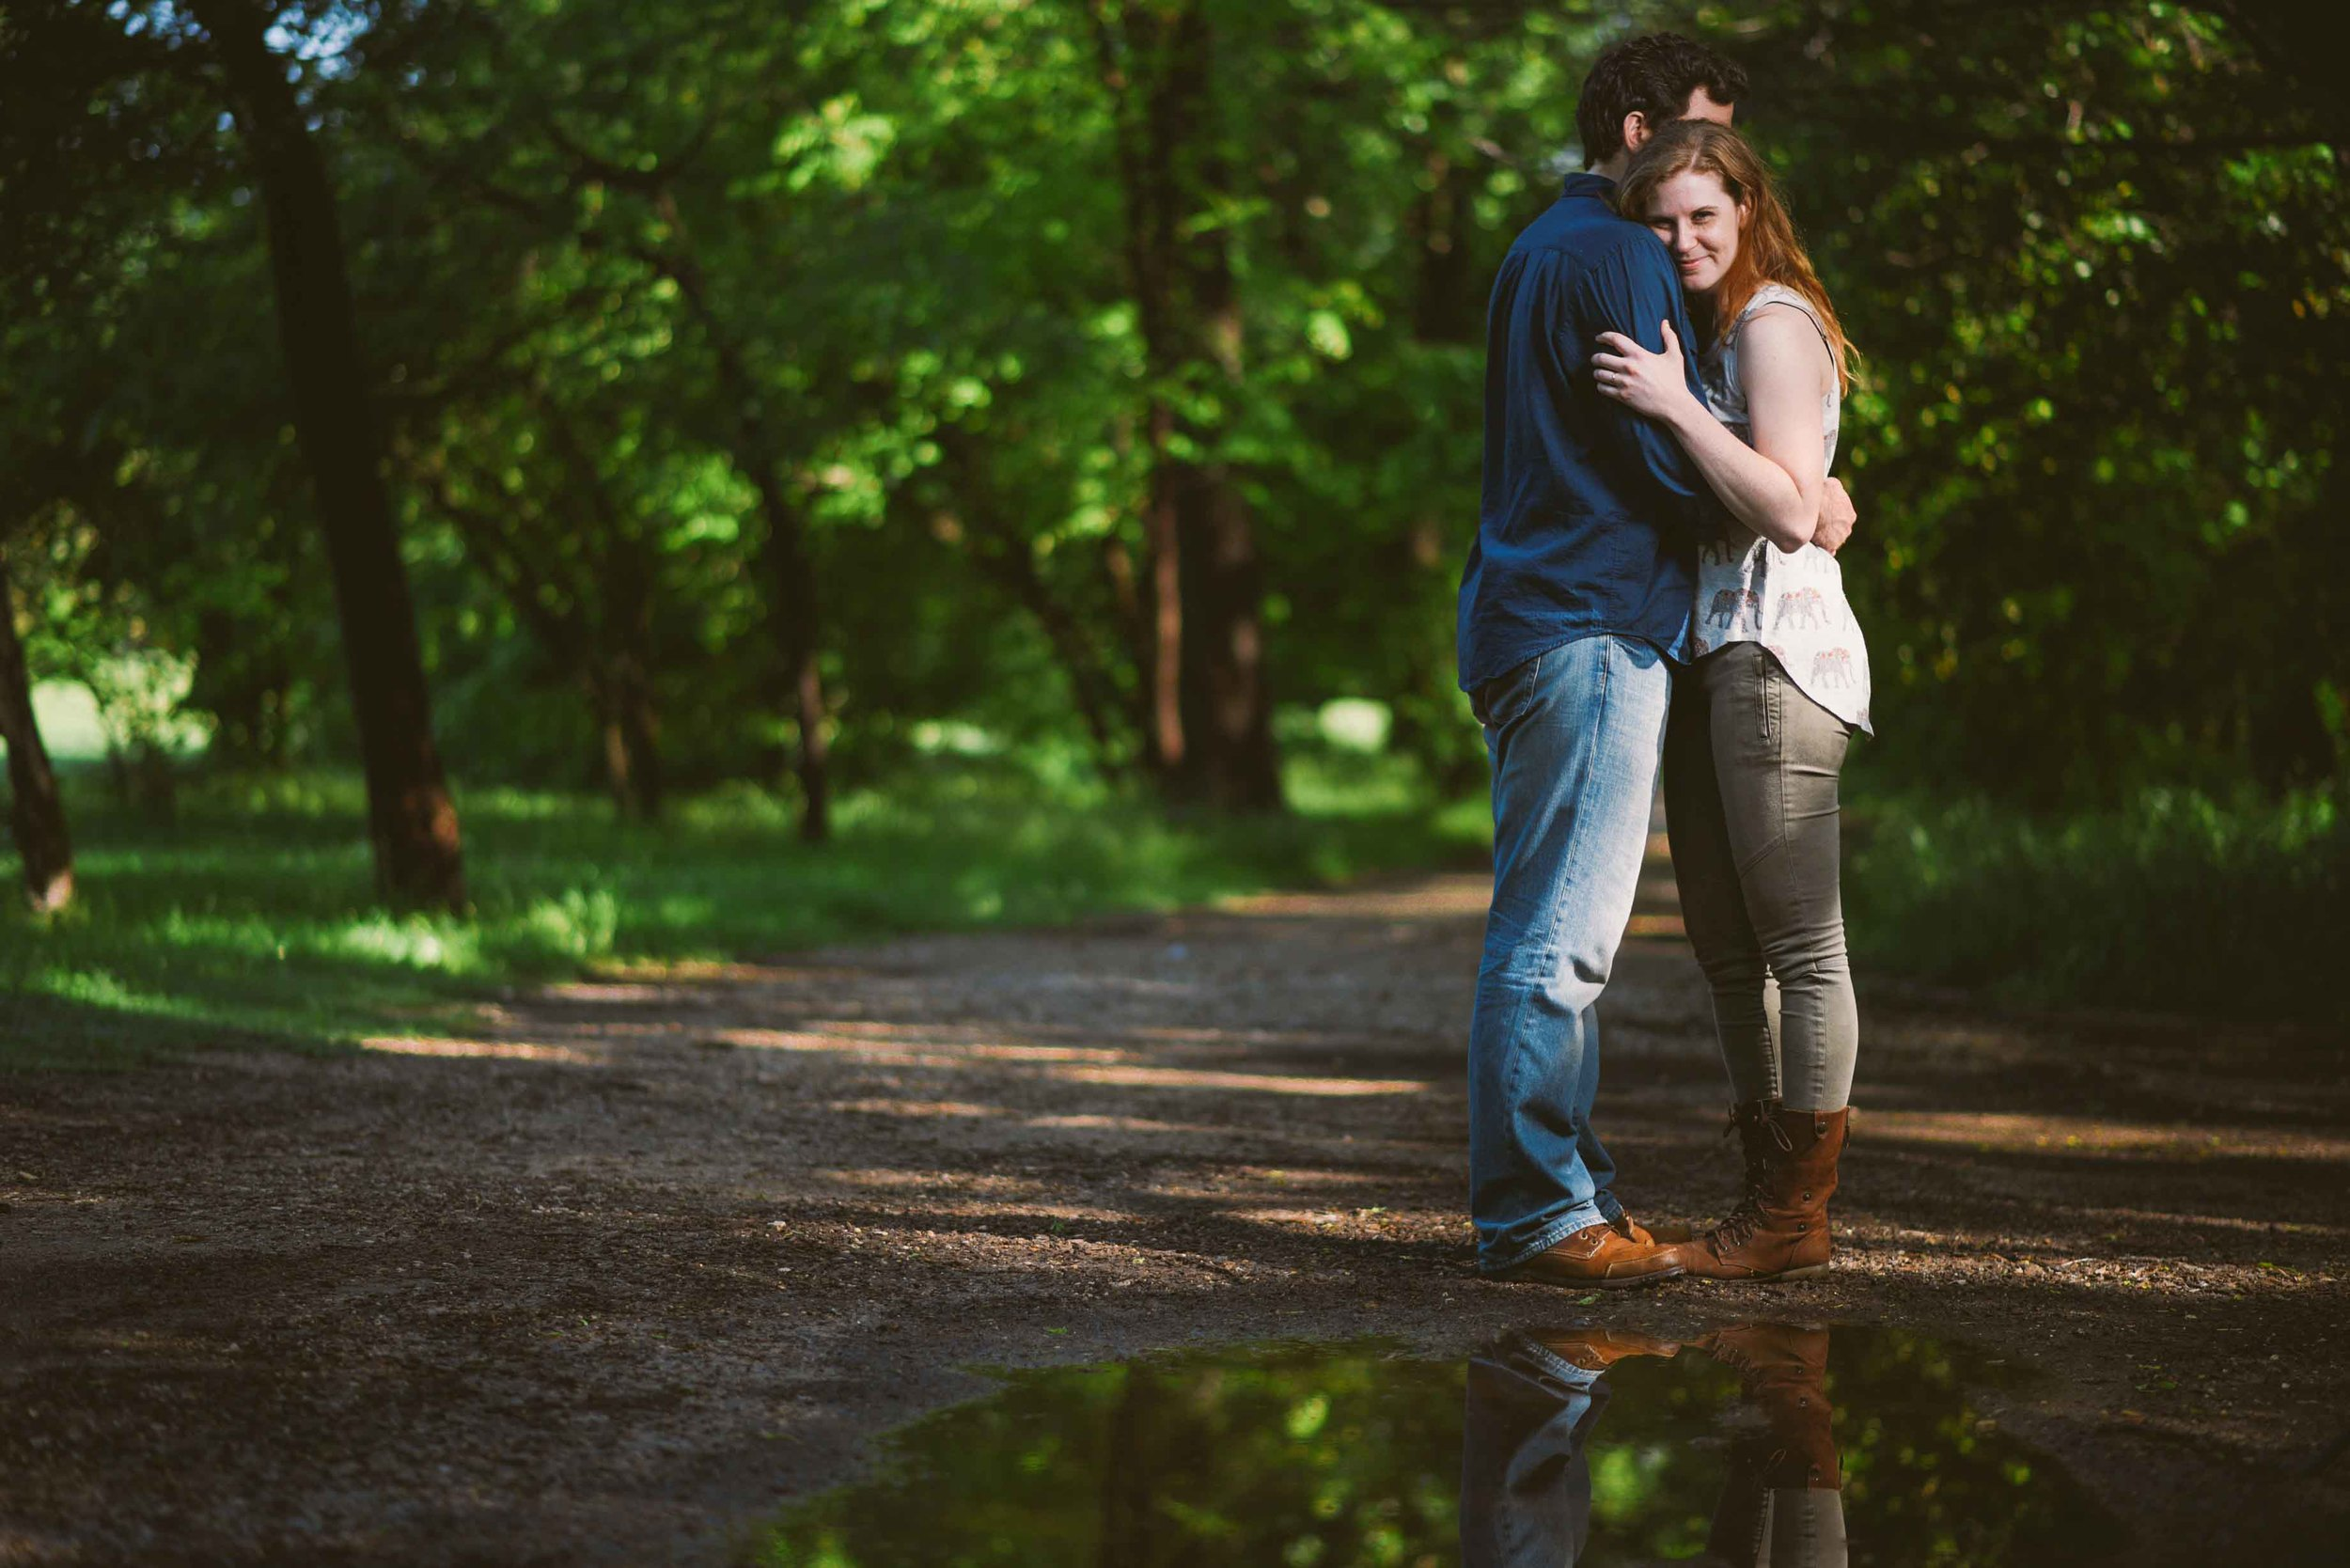 Fort Worth Engagement Photos - Cody and Kathryn  - Reflection